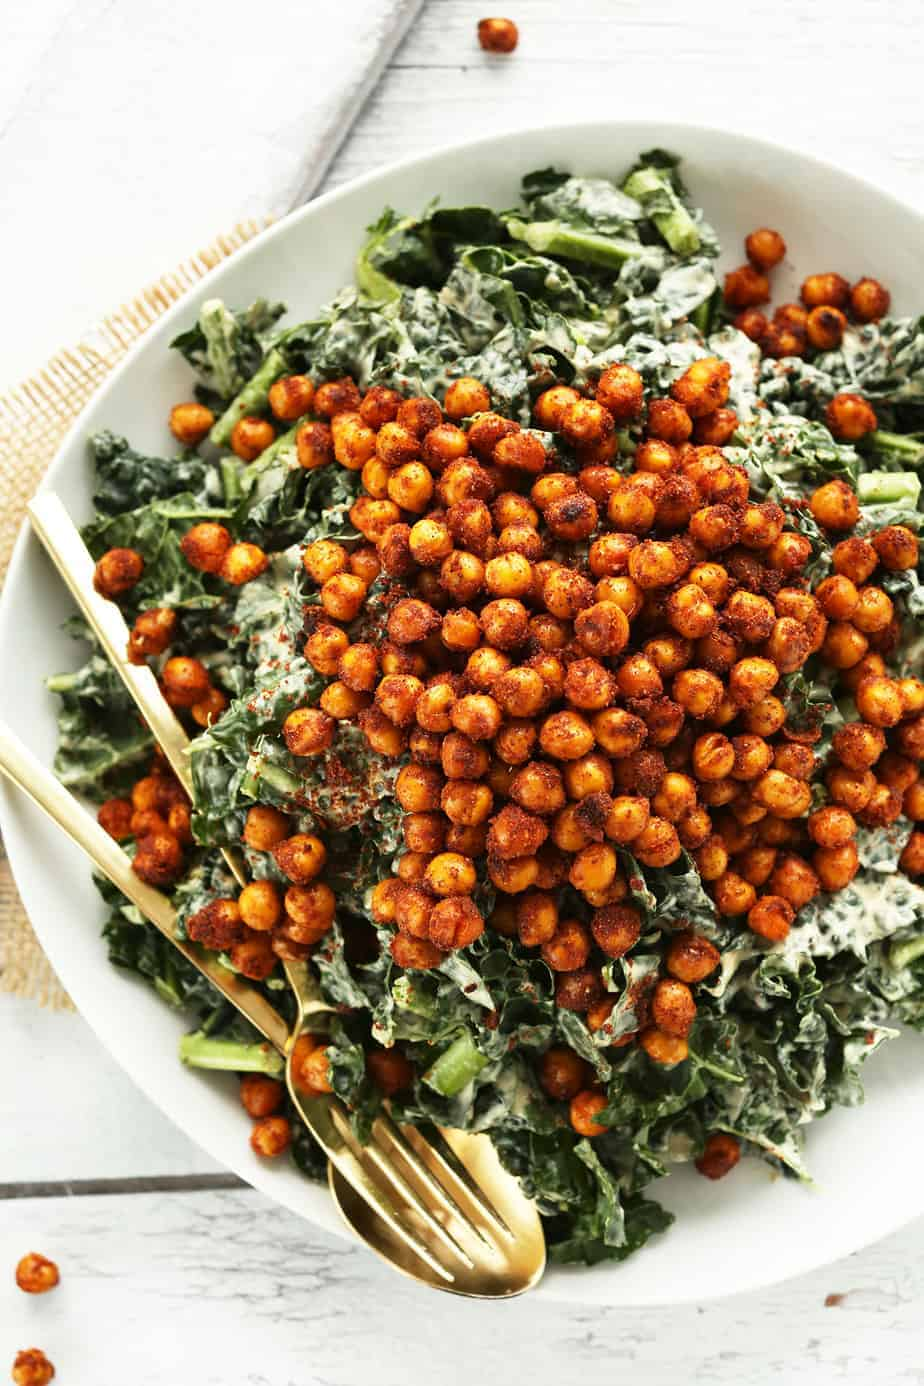 AMAZING-Garlicky-Kale-Salad-with-Tandoori-Spiced-Chickpeas-30-minutes-and-SO-delicious-vegan-glutenfree-dinner